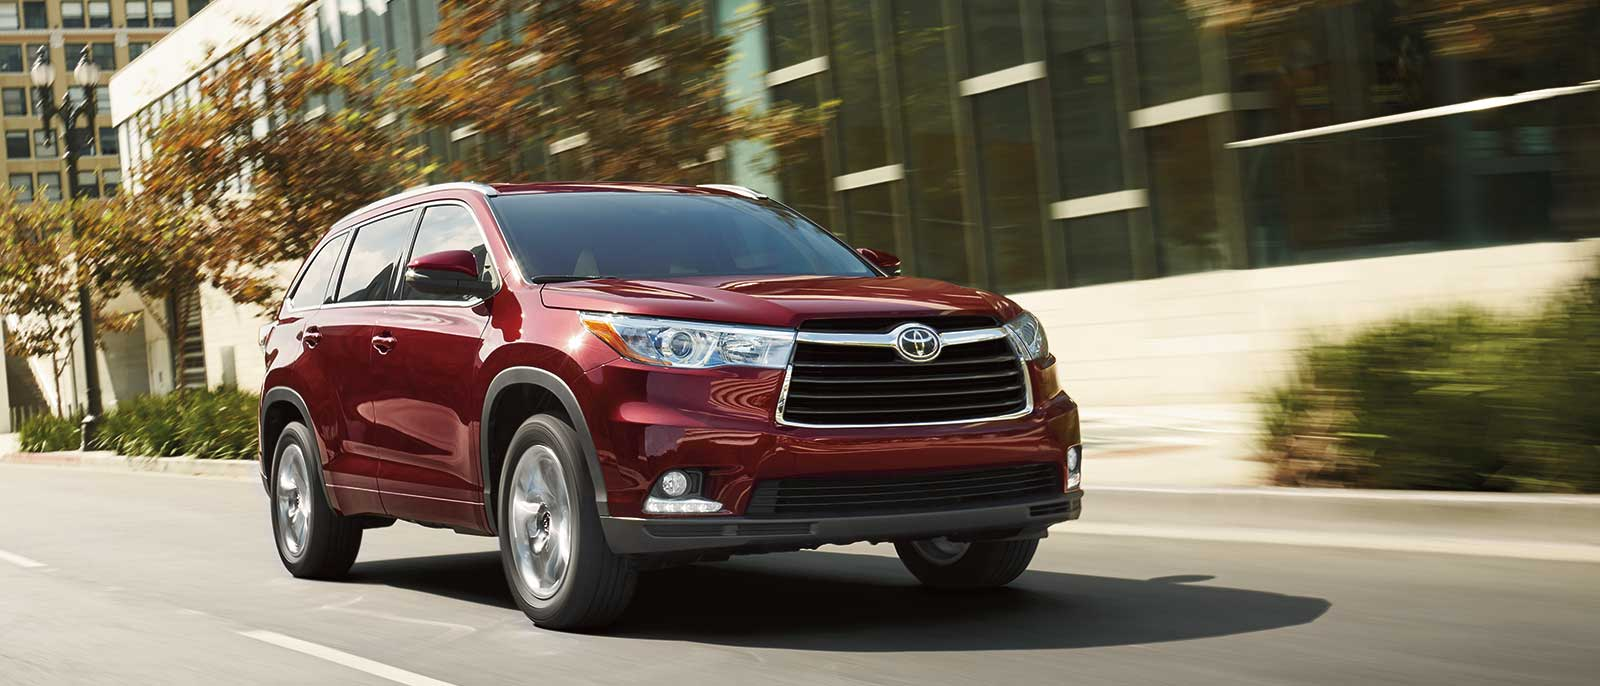 lethbridge toyota welcomes the 2016 toyota highlander hybrid. Black Bedroom Furniture Sets. Home Design Ideas